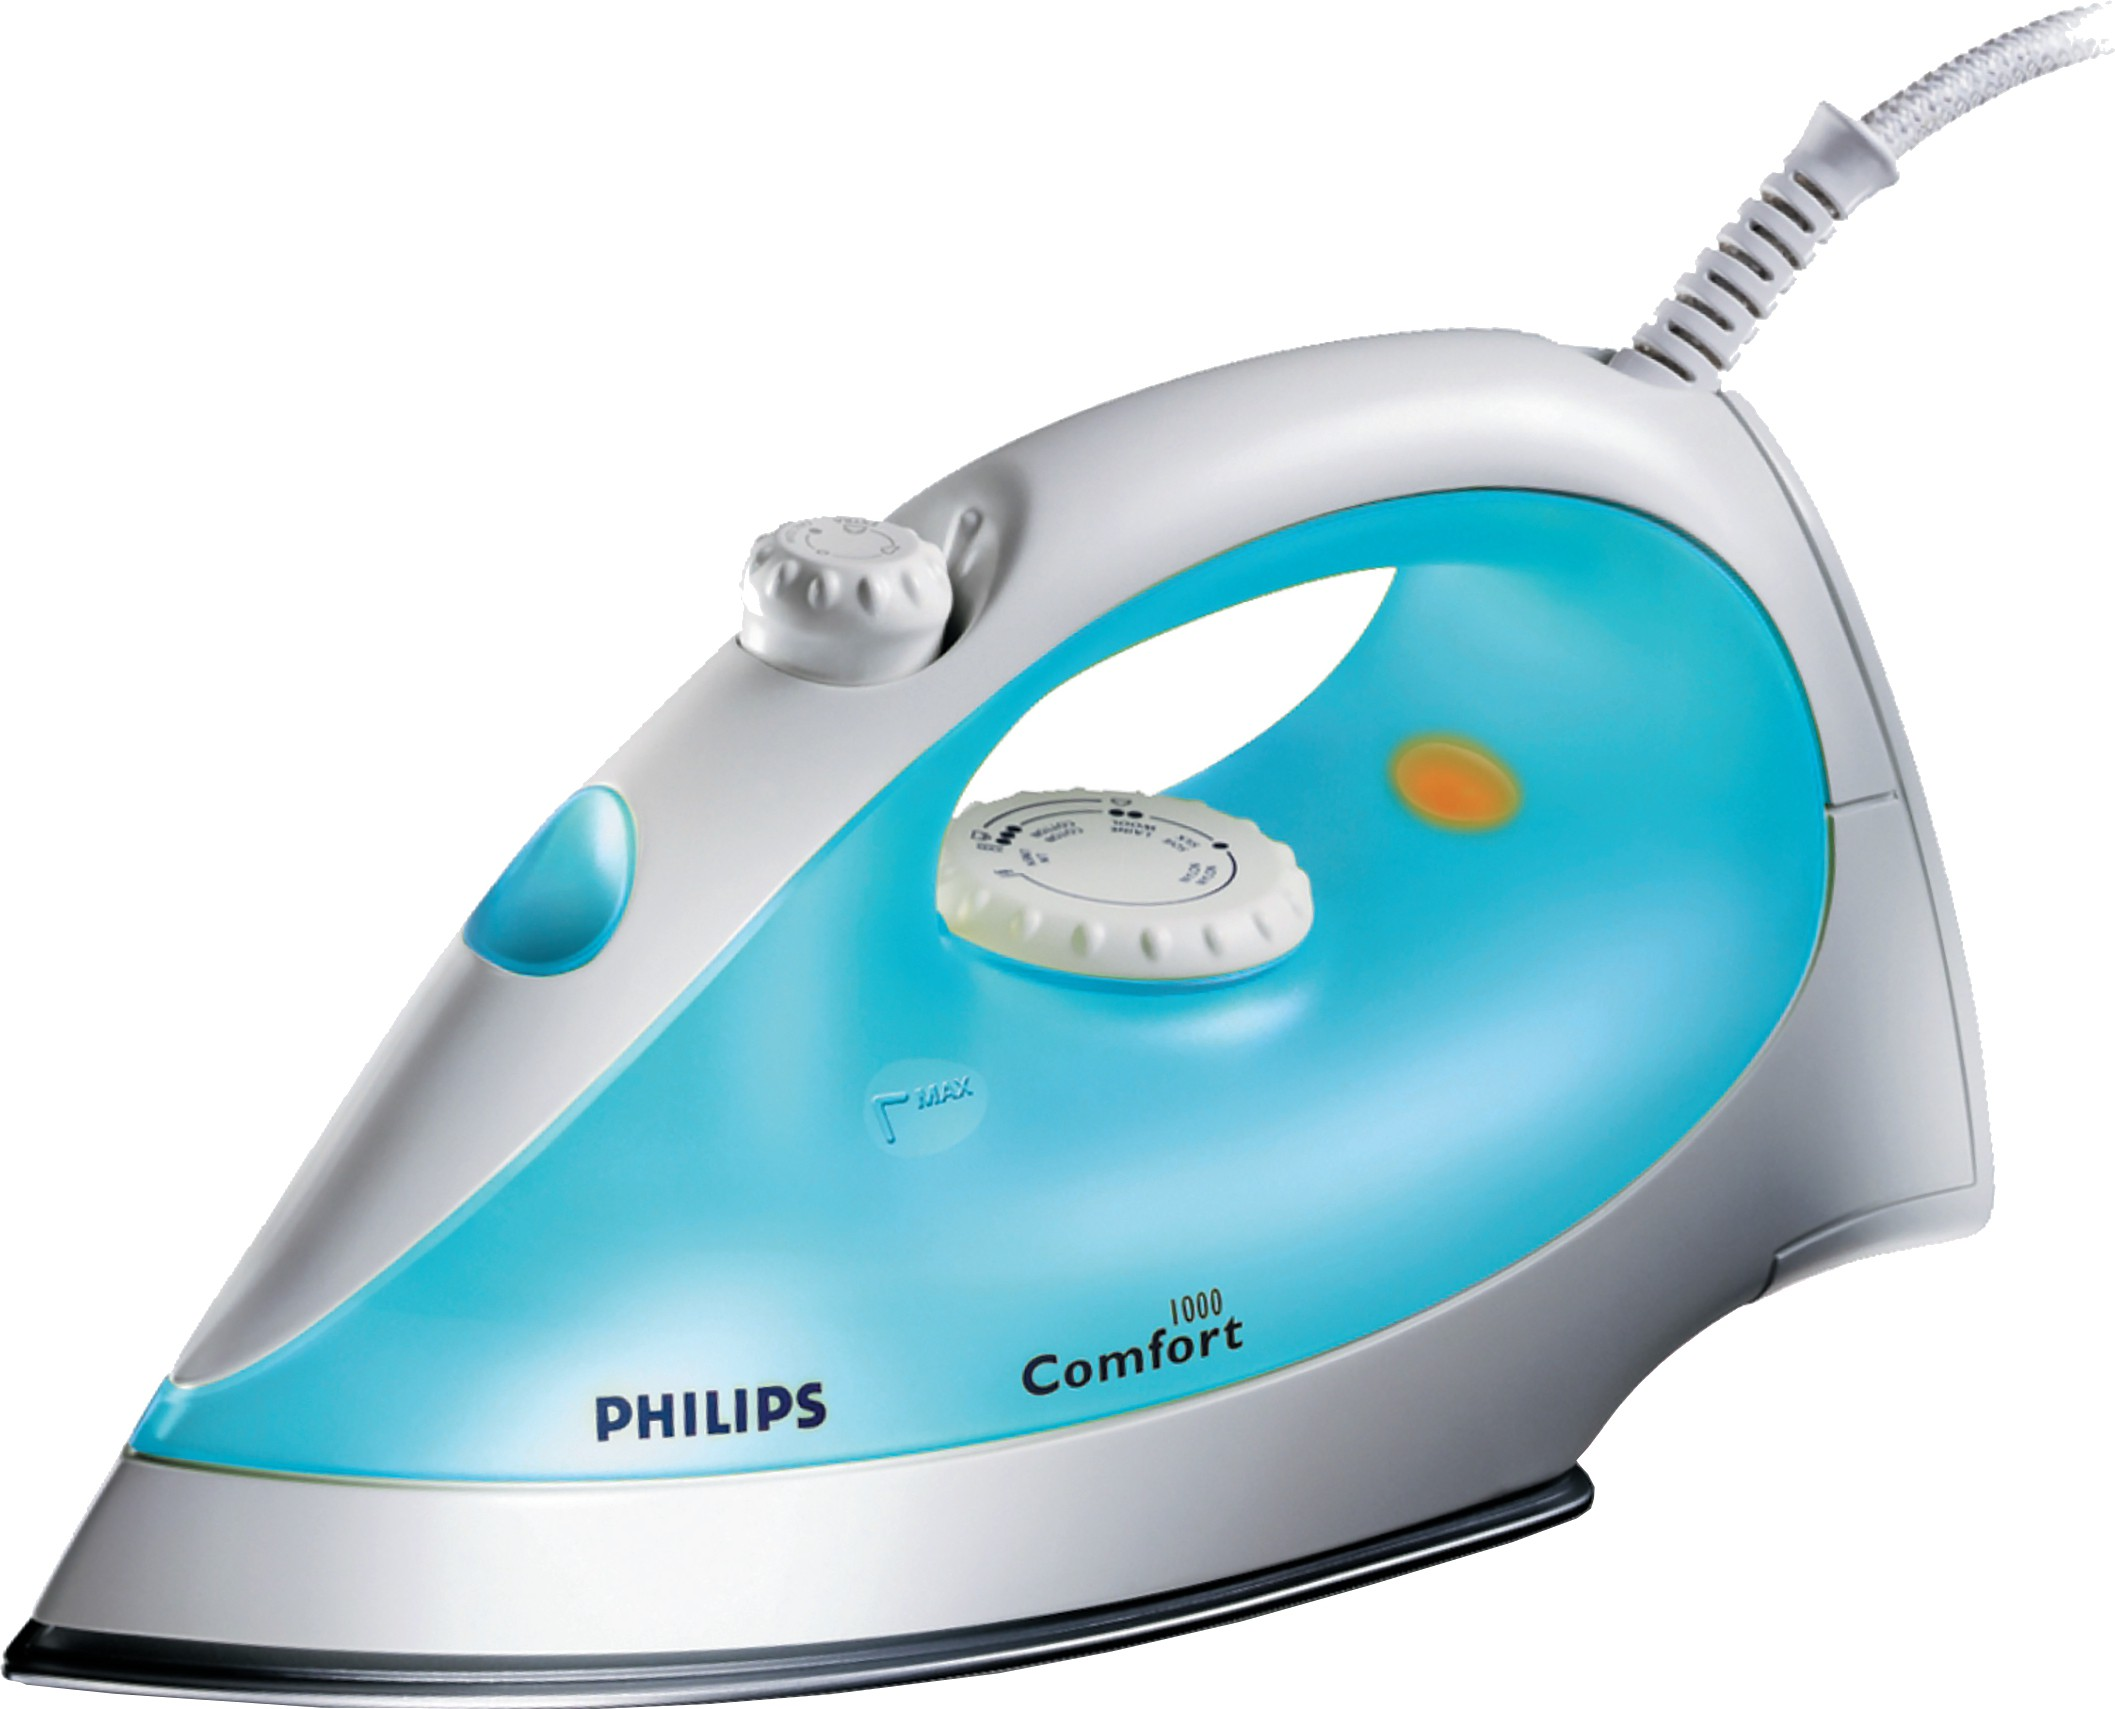 Deals | Upto 50% Off Philips, Bajaj & more